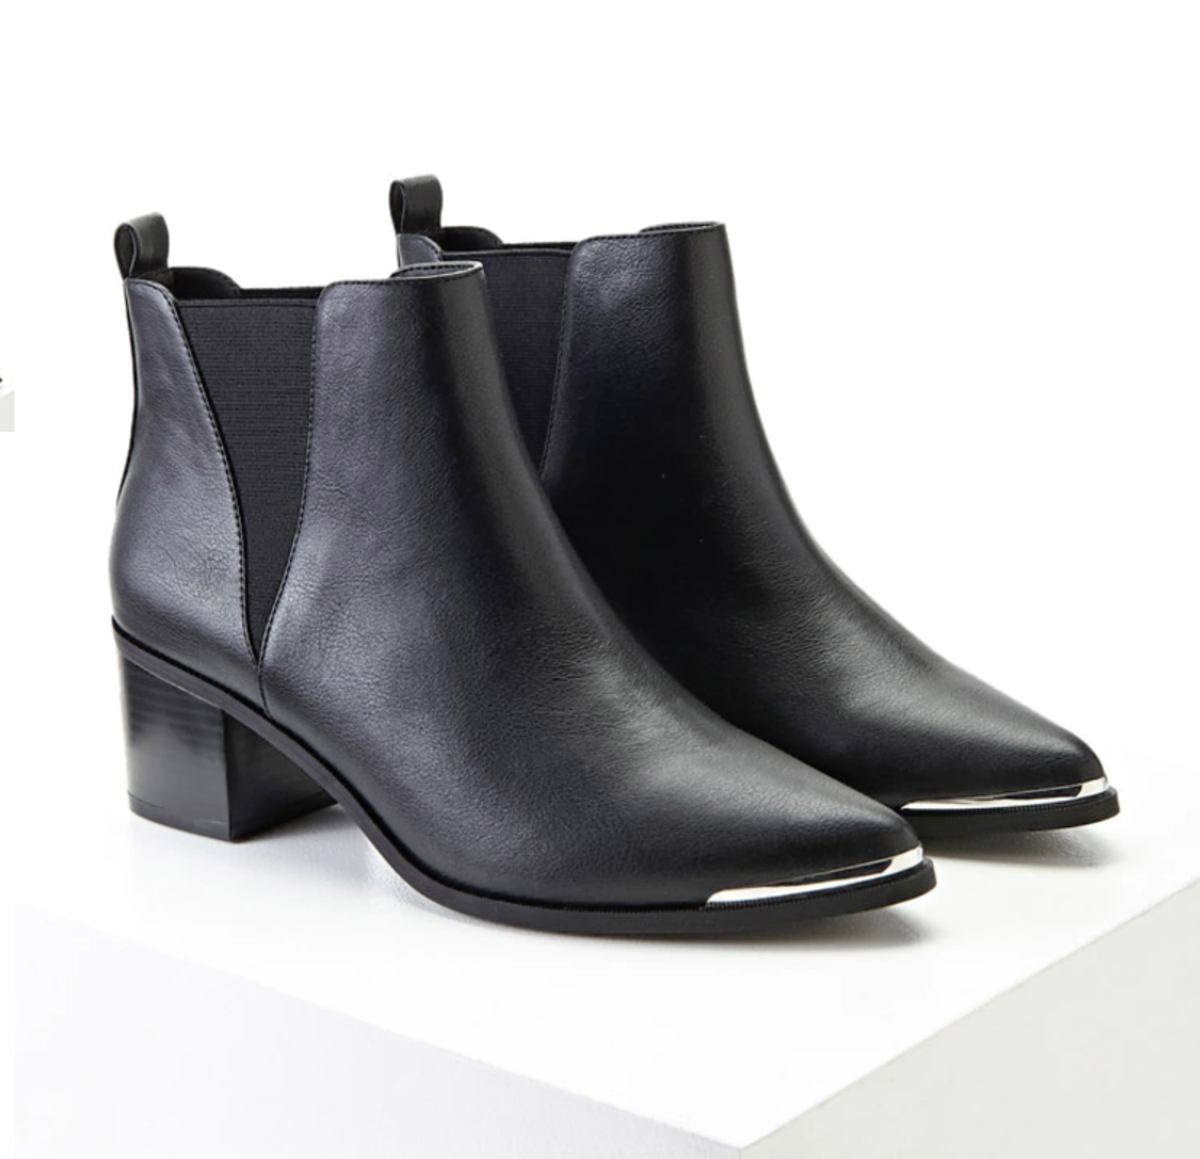 Shop the Item: Faux Leather Ankle Boots ($32) - These remind me of my beloved Alexander Wang boots with metallic detail, for a fraction of the cost